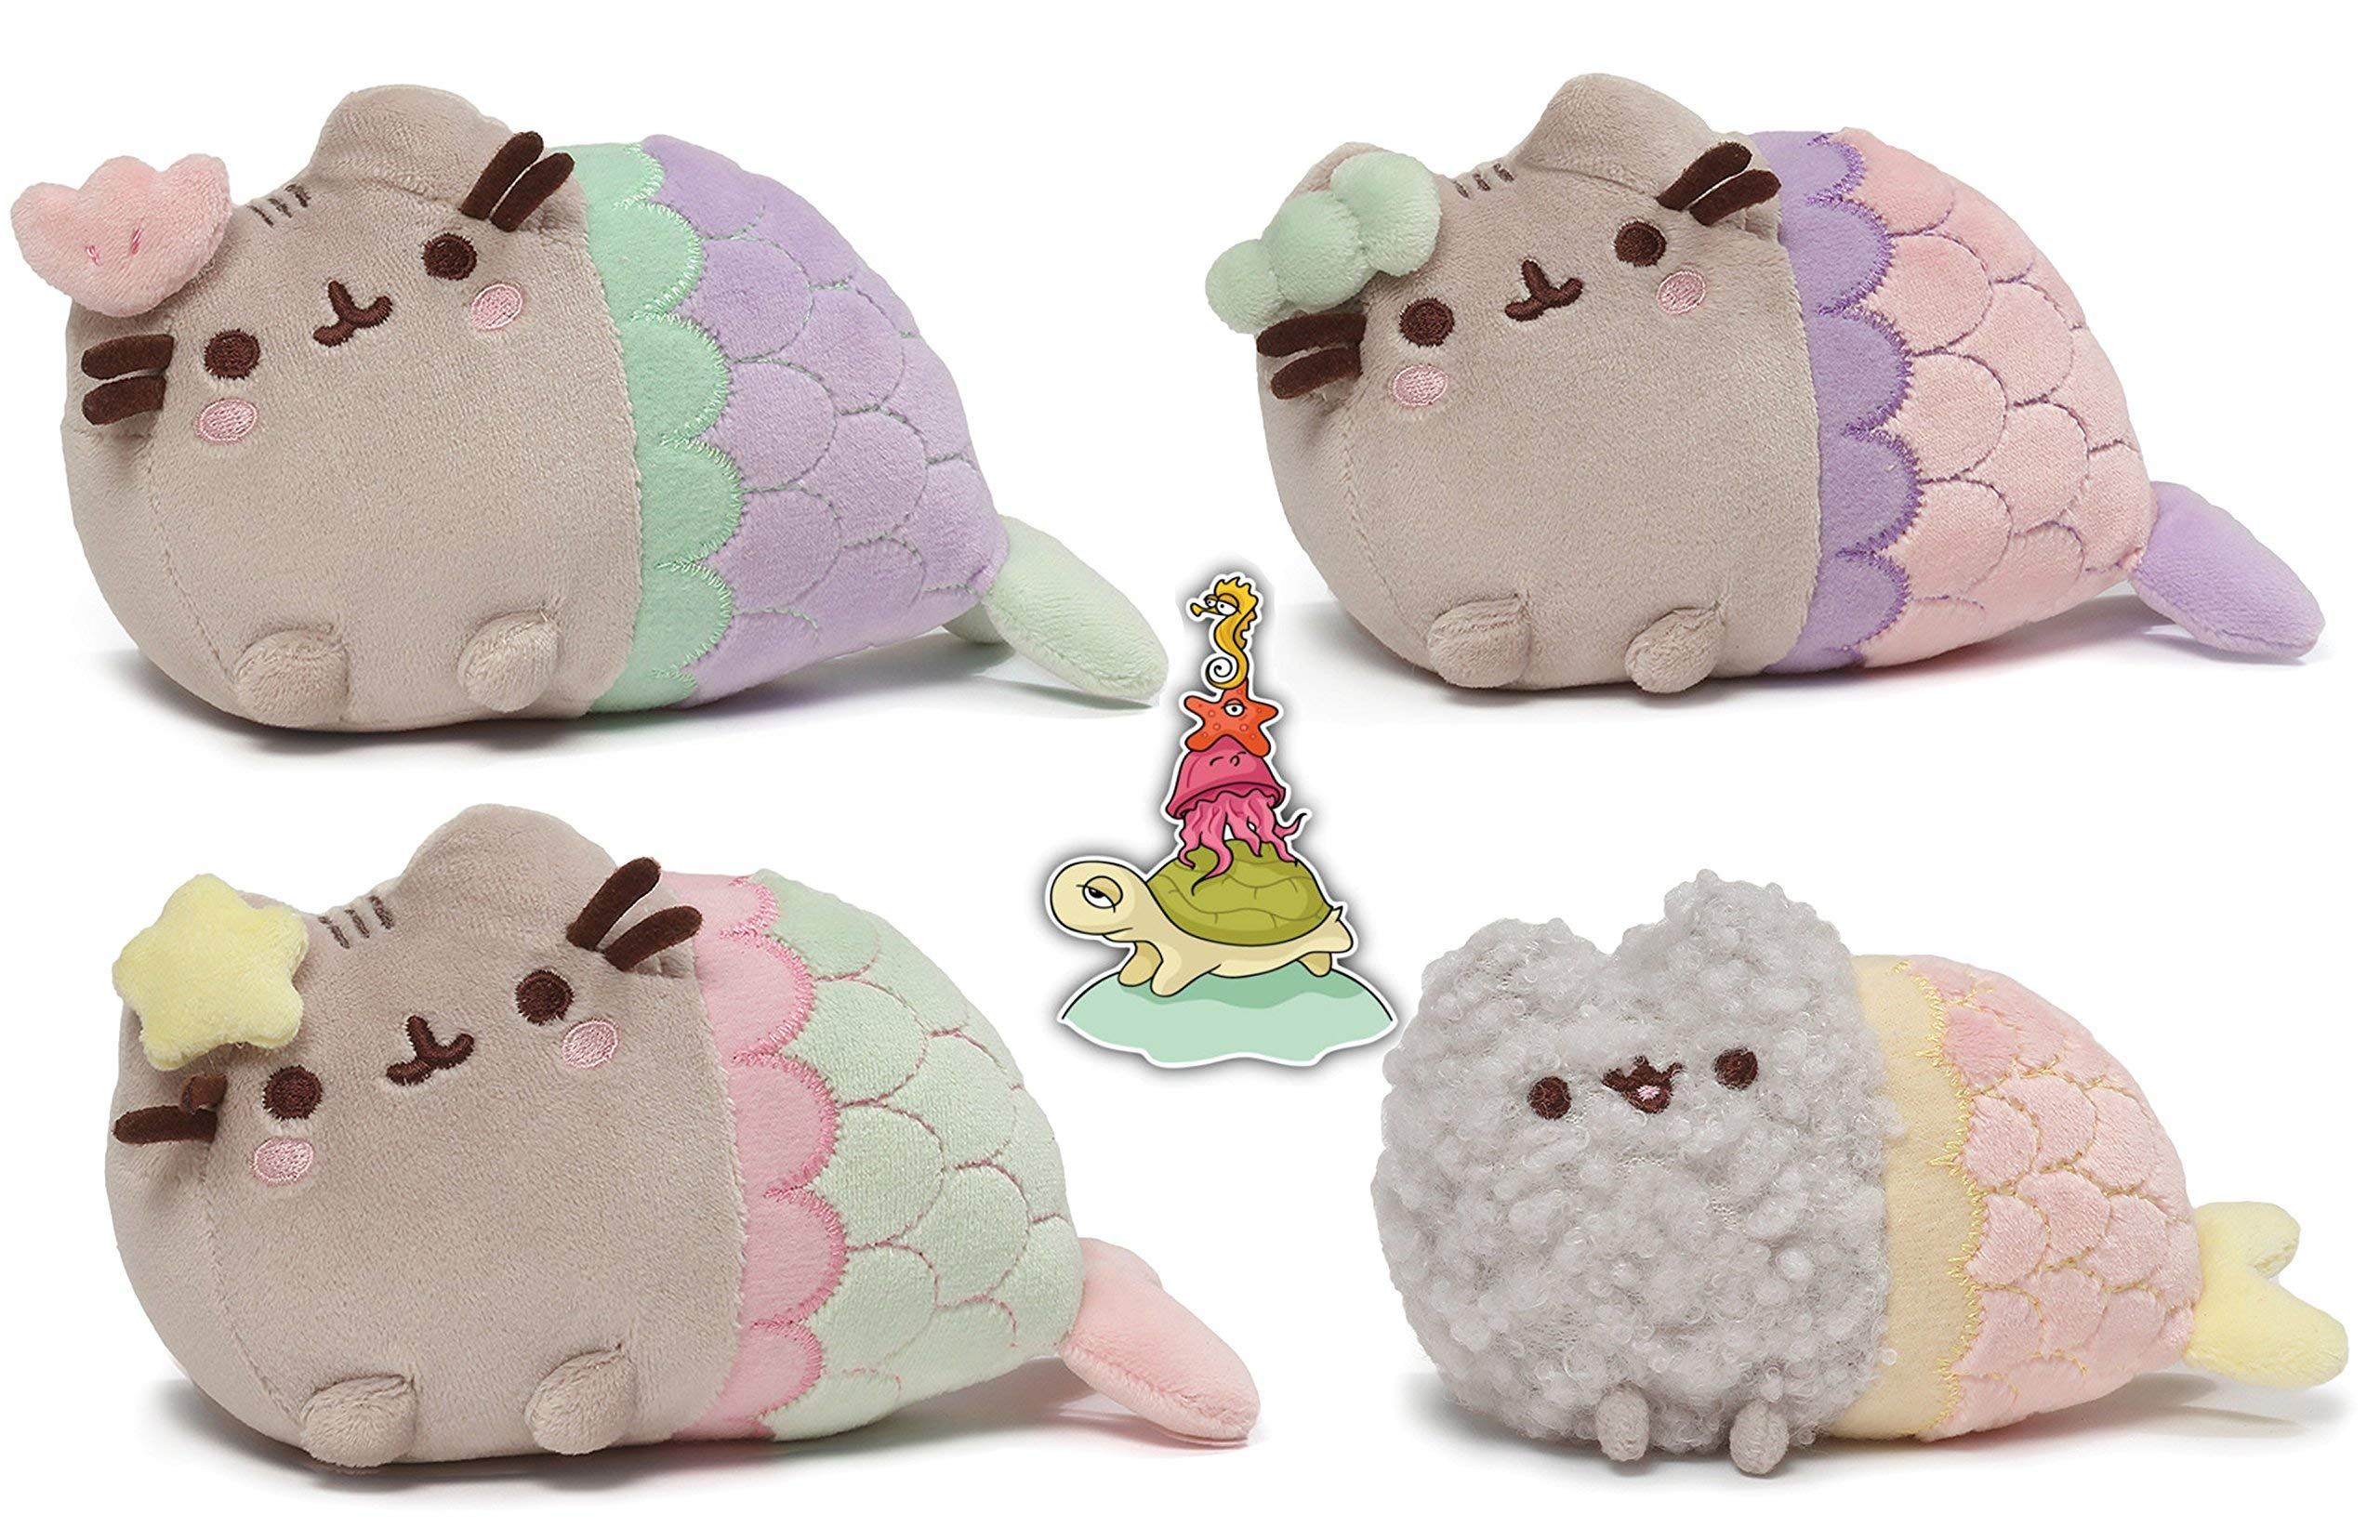 Gund Pusheen the Cat and Stormy as Mermaids with Pastel Pink, Purple, and Green Tails and Siral, Clam, and Star Shells Collector's Set of 4 Plush Toys with Sea Animals Sticker by GUND